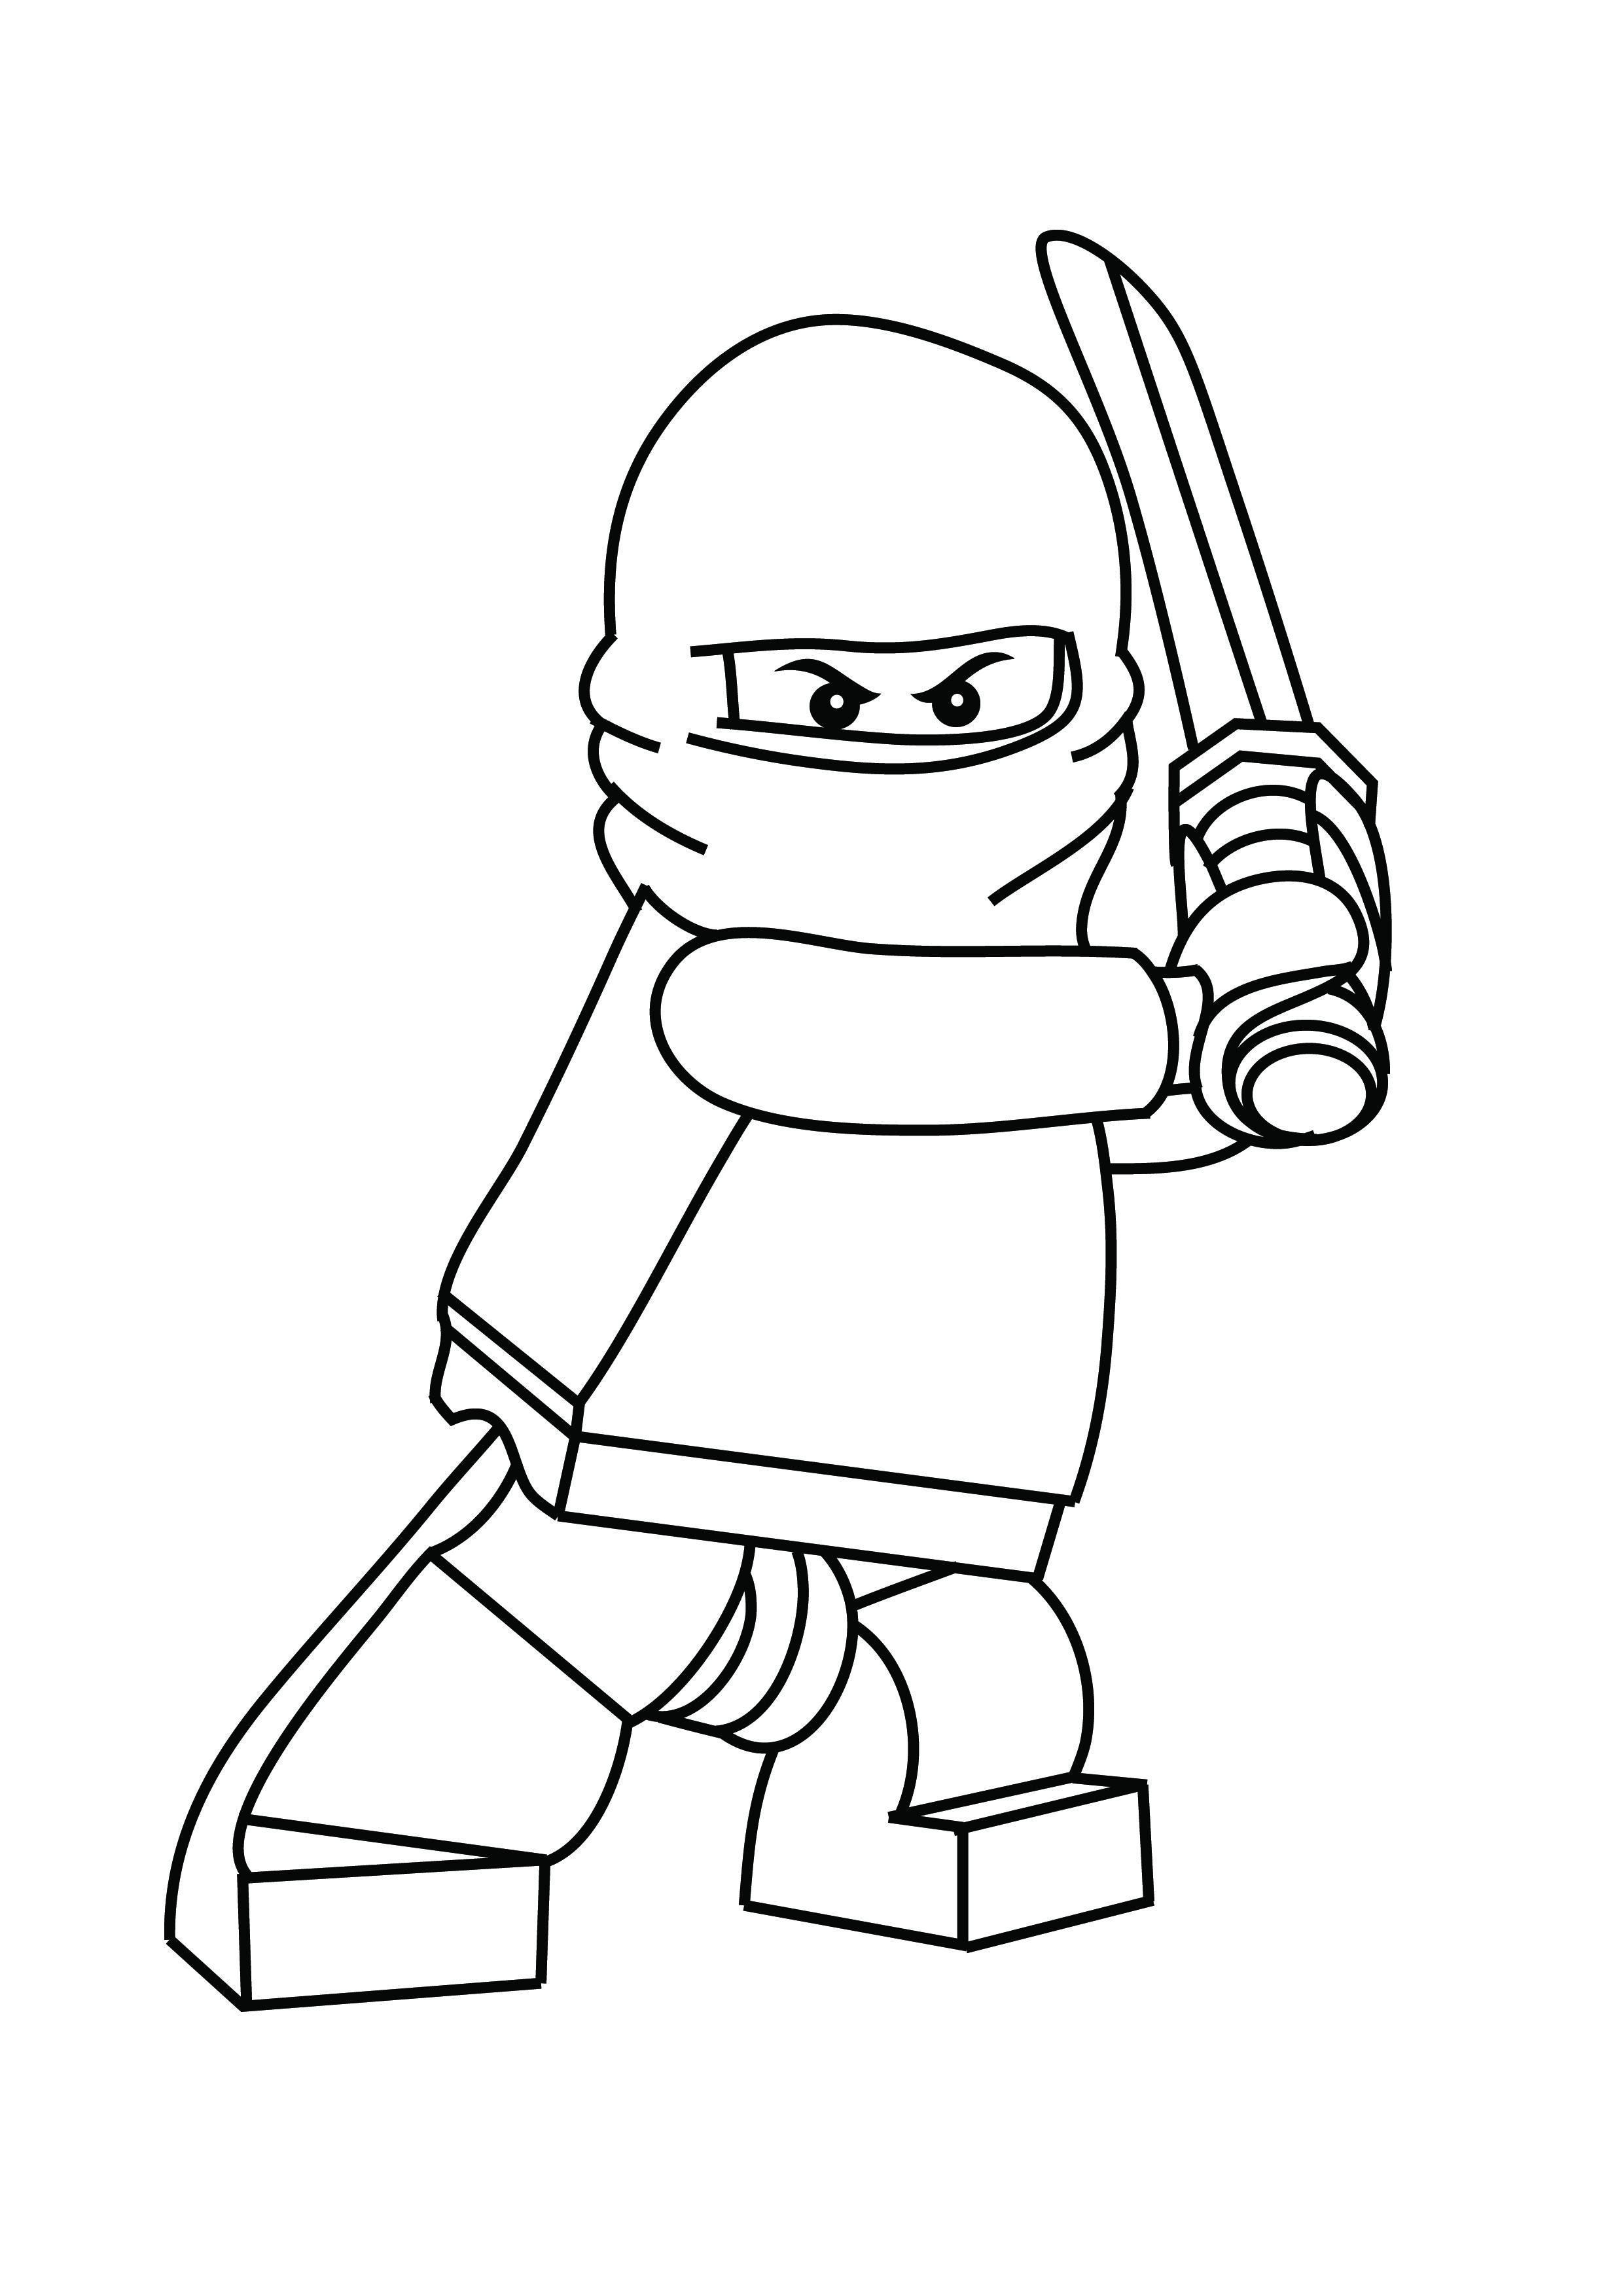 lego colouring in pictures lego marvel coloring pages coloring home pictures colouring in lego